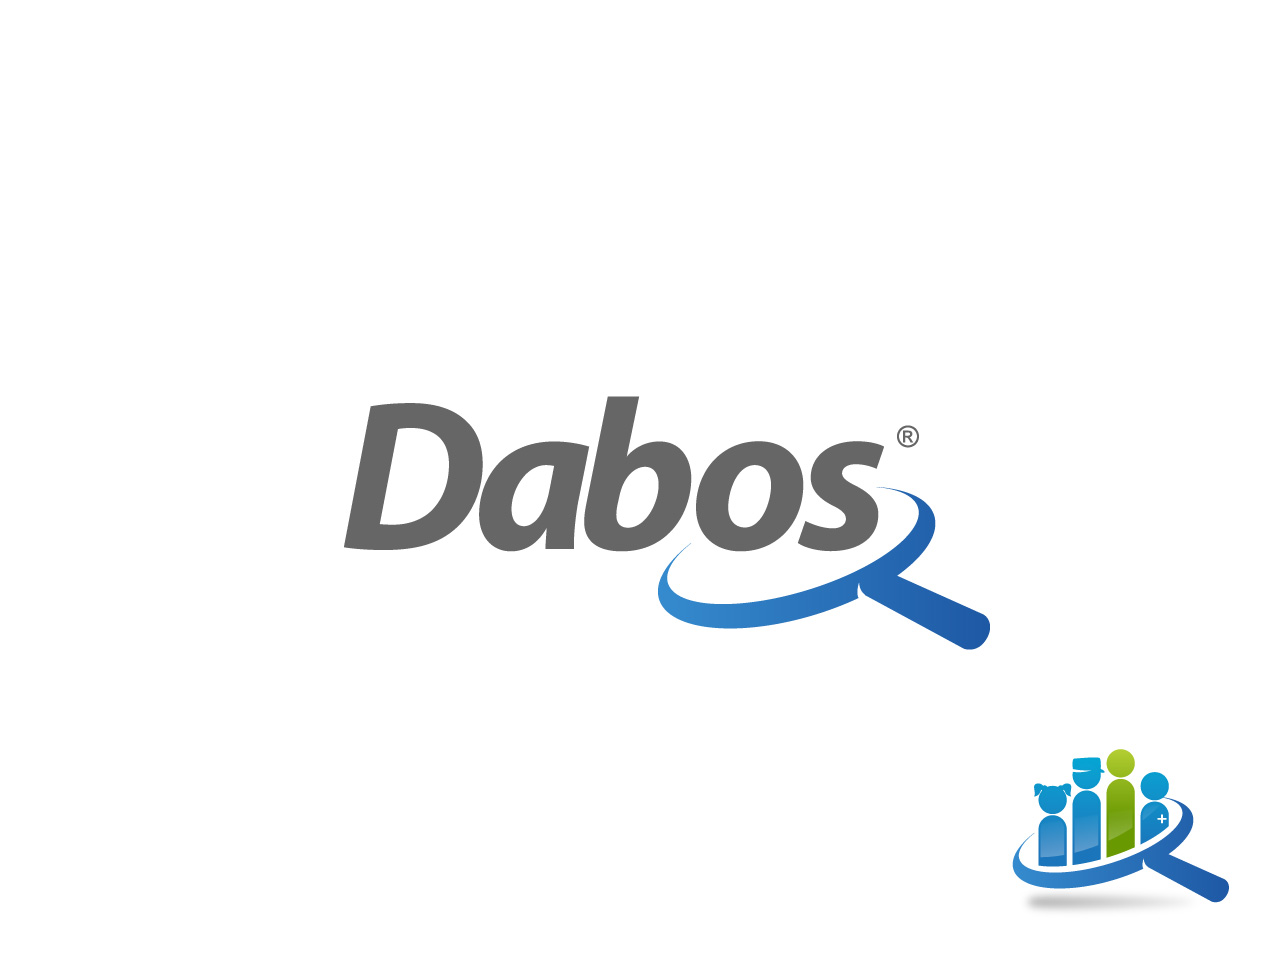 Logo Design by jpbituin - Entry No. 128 in the Logo Design Contest Imaginative Logo Design for DABOS, Limited Liability Company.